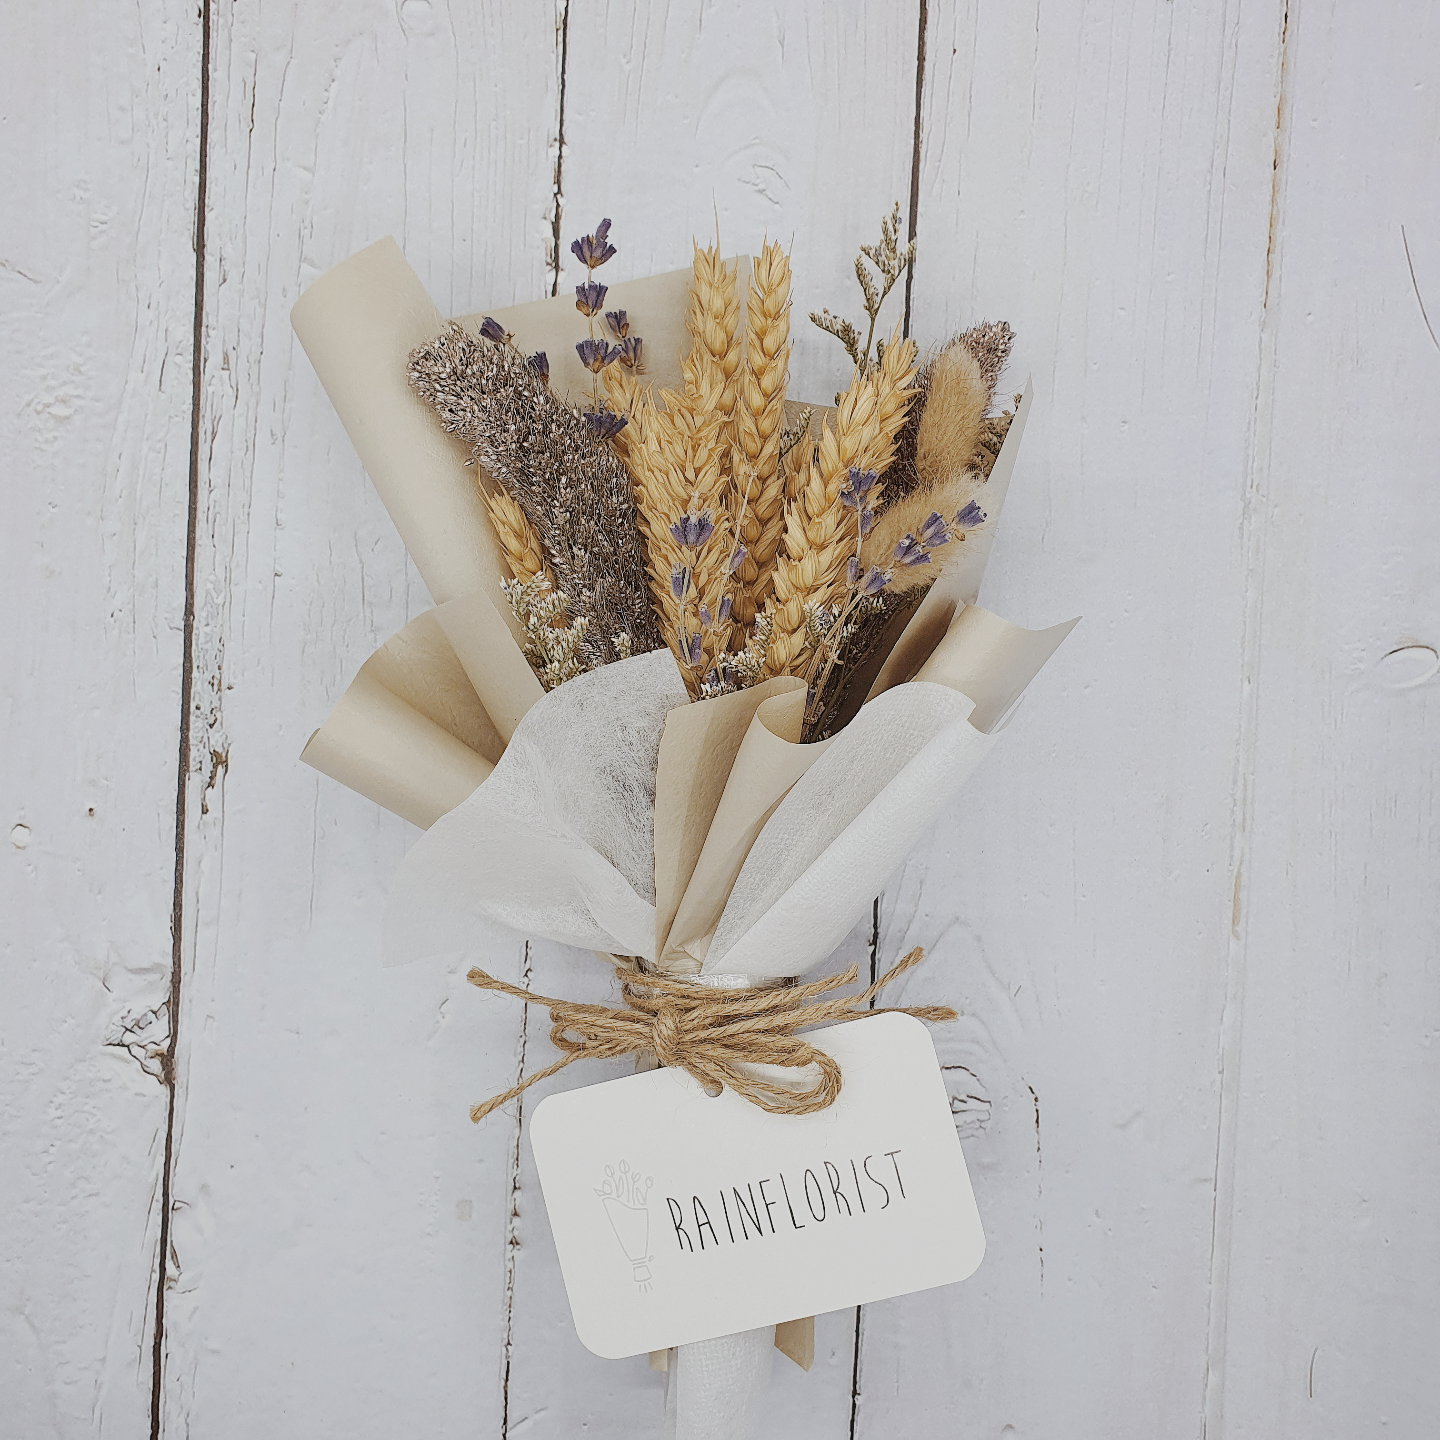 A bouquet of dried flowers in coffee brown.